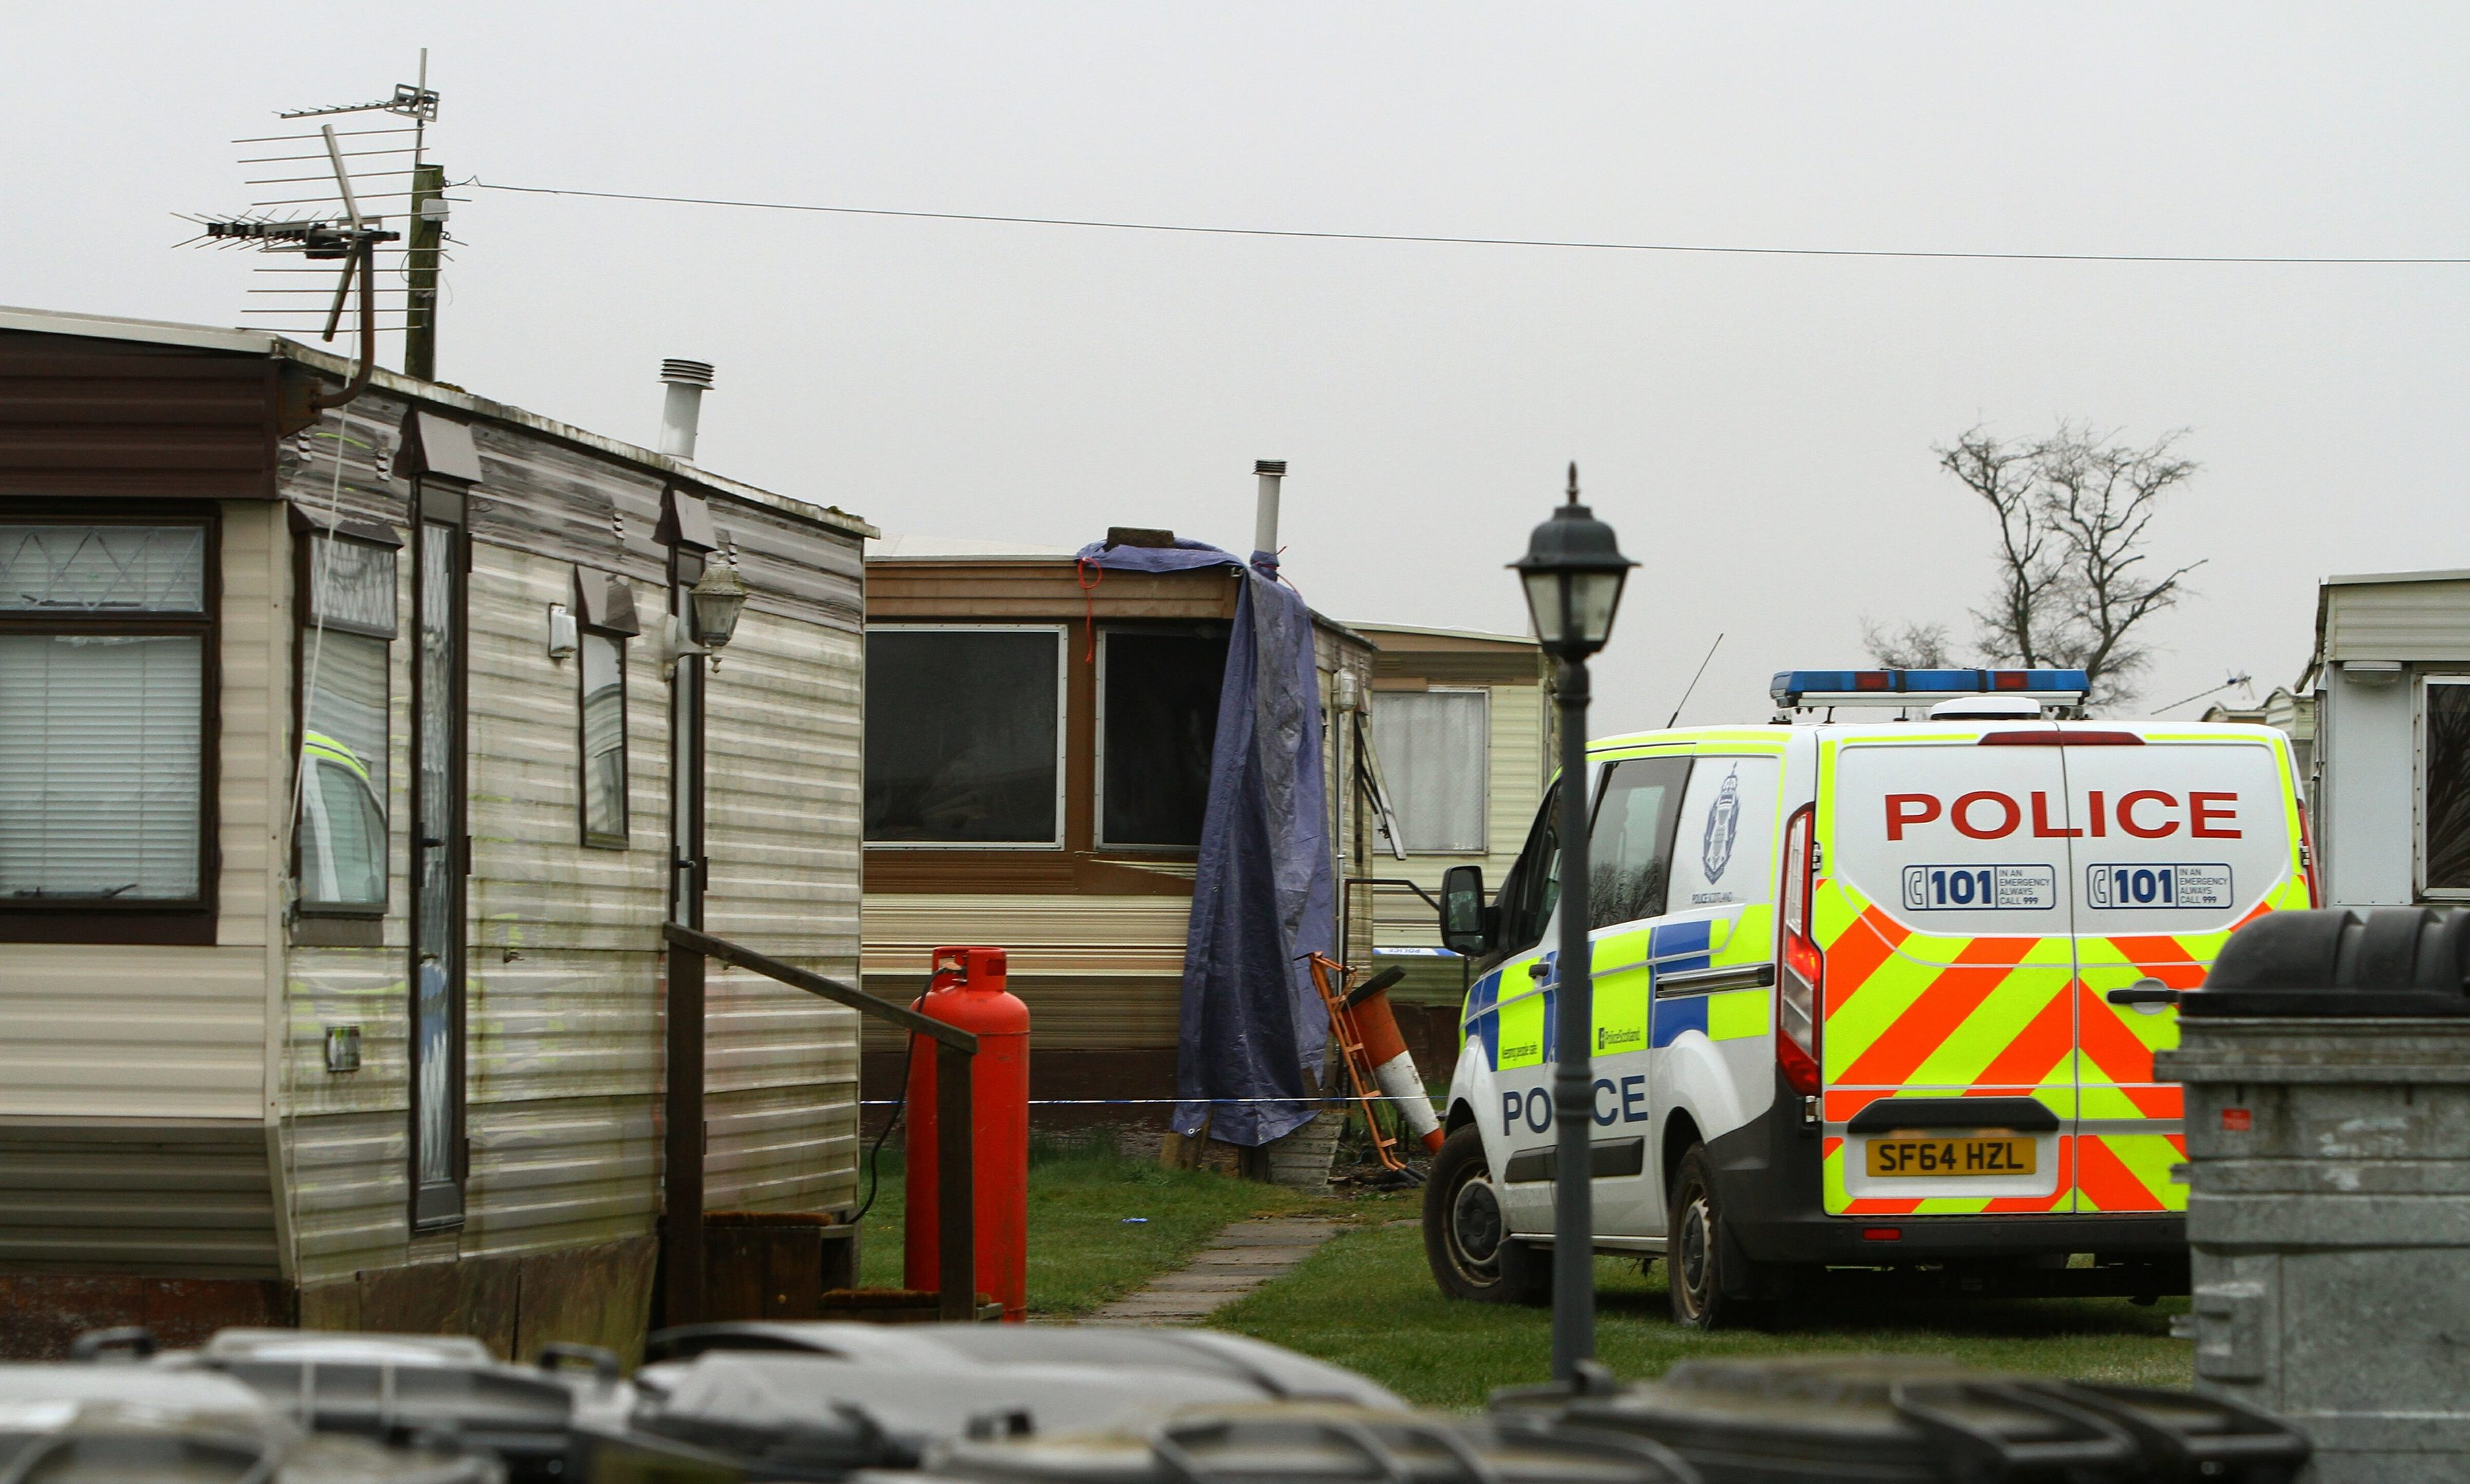 The scene of the fatal fire at Woodley Caravan Park